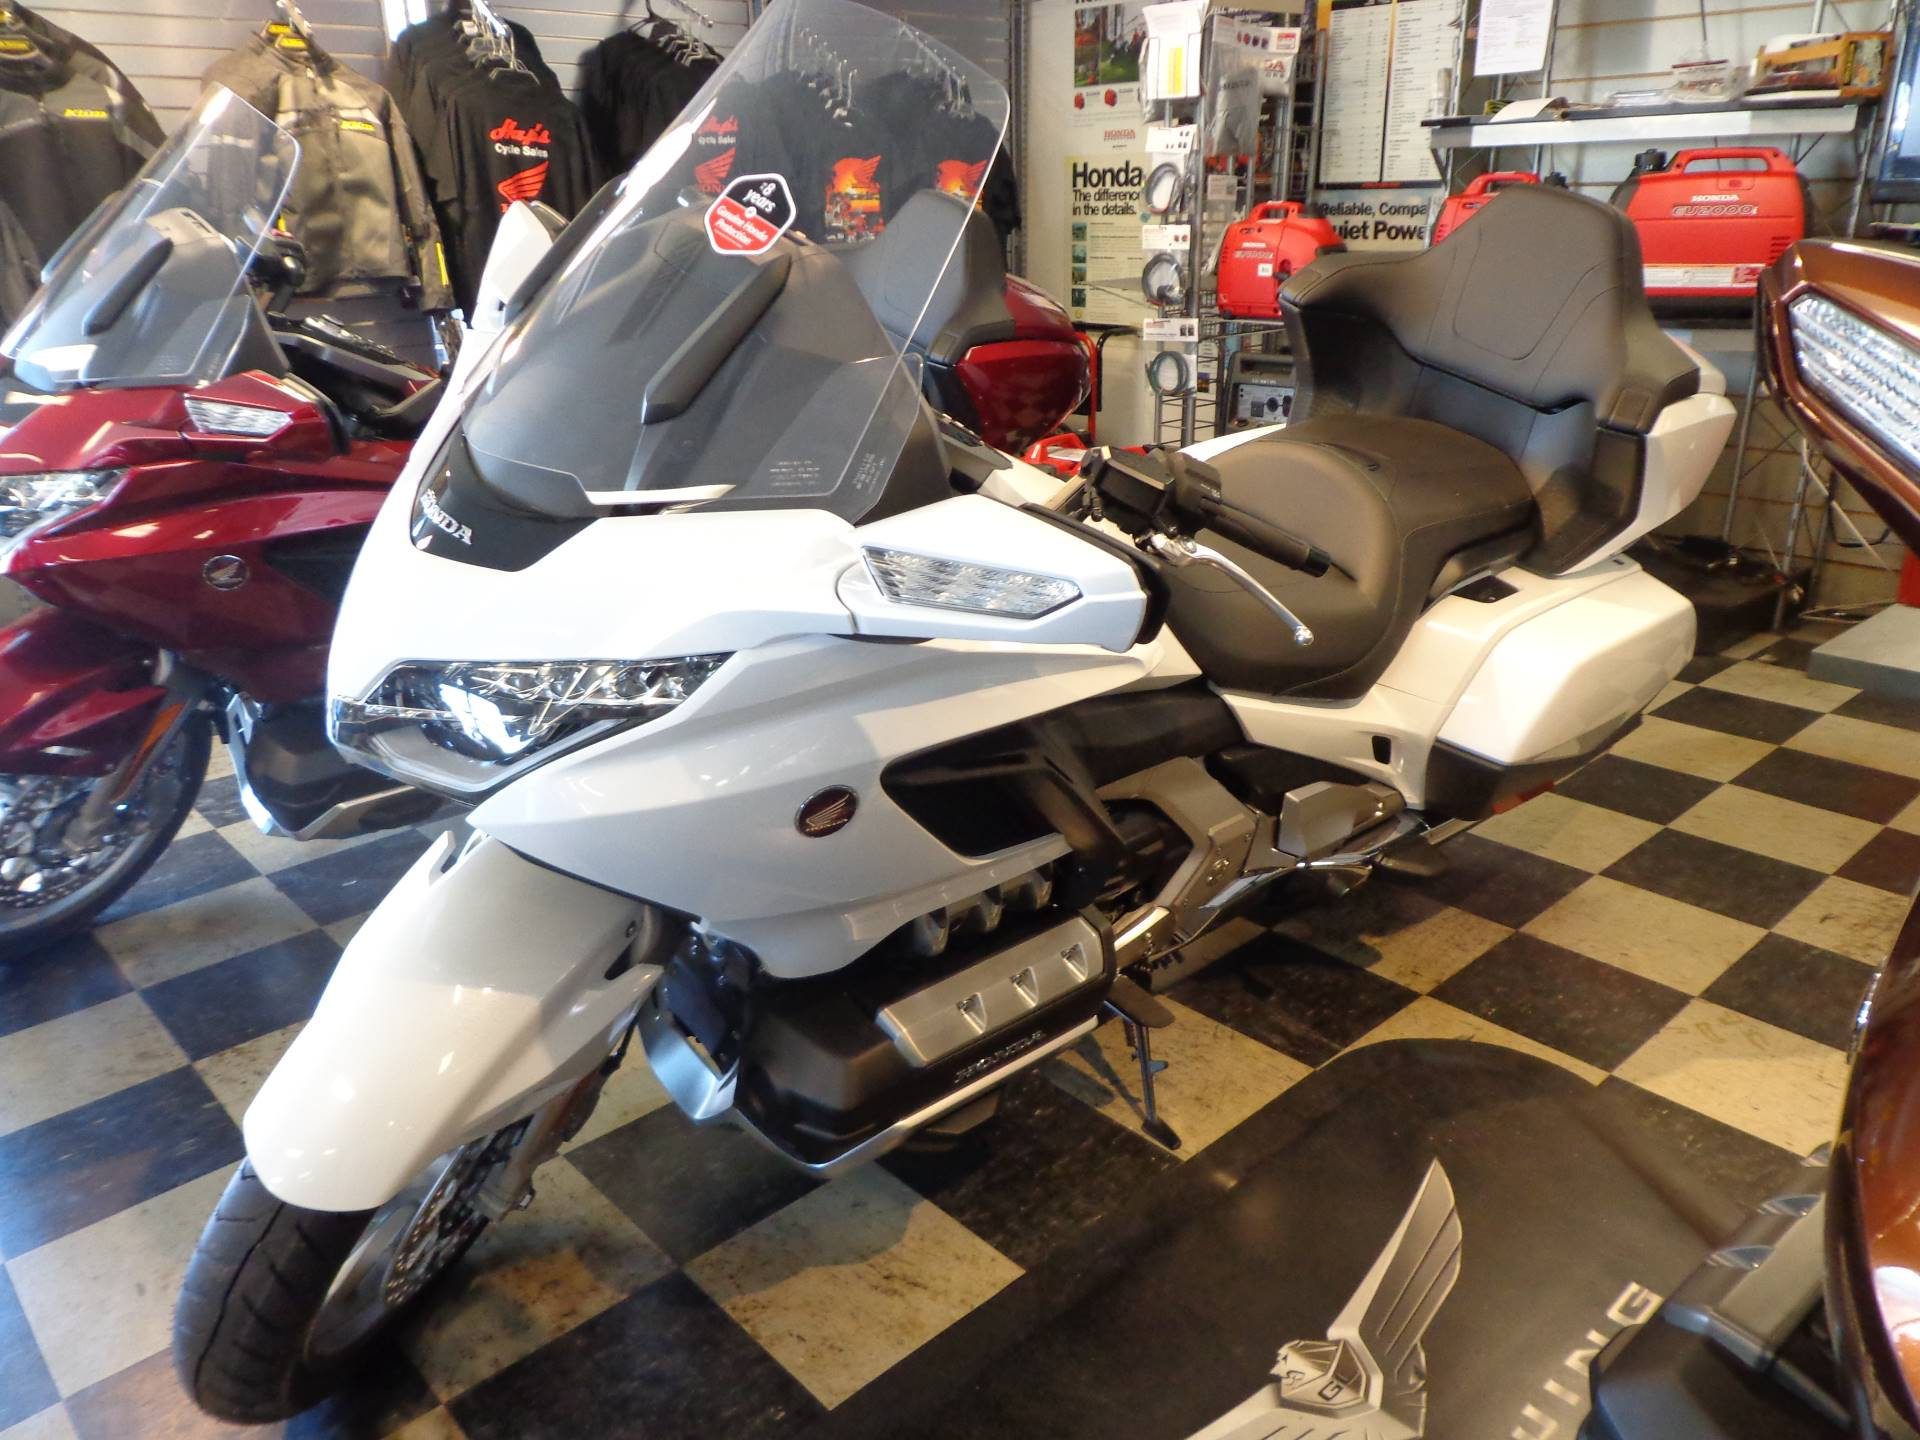 2018 Honda Gold Wing Tour for sale 8092